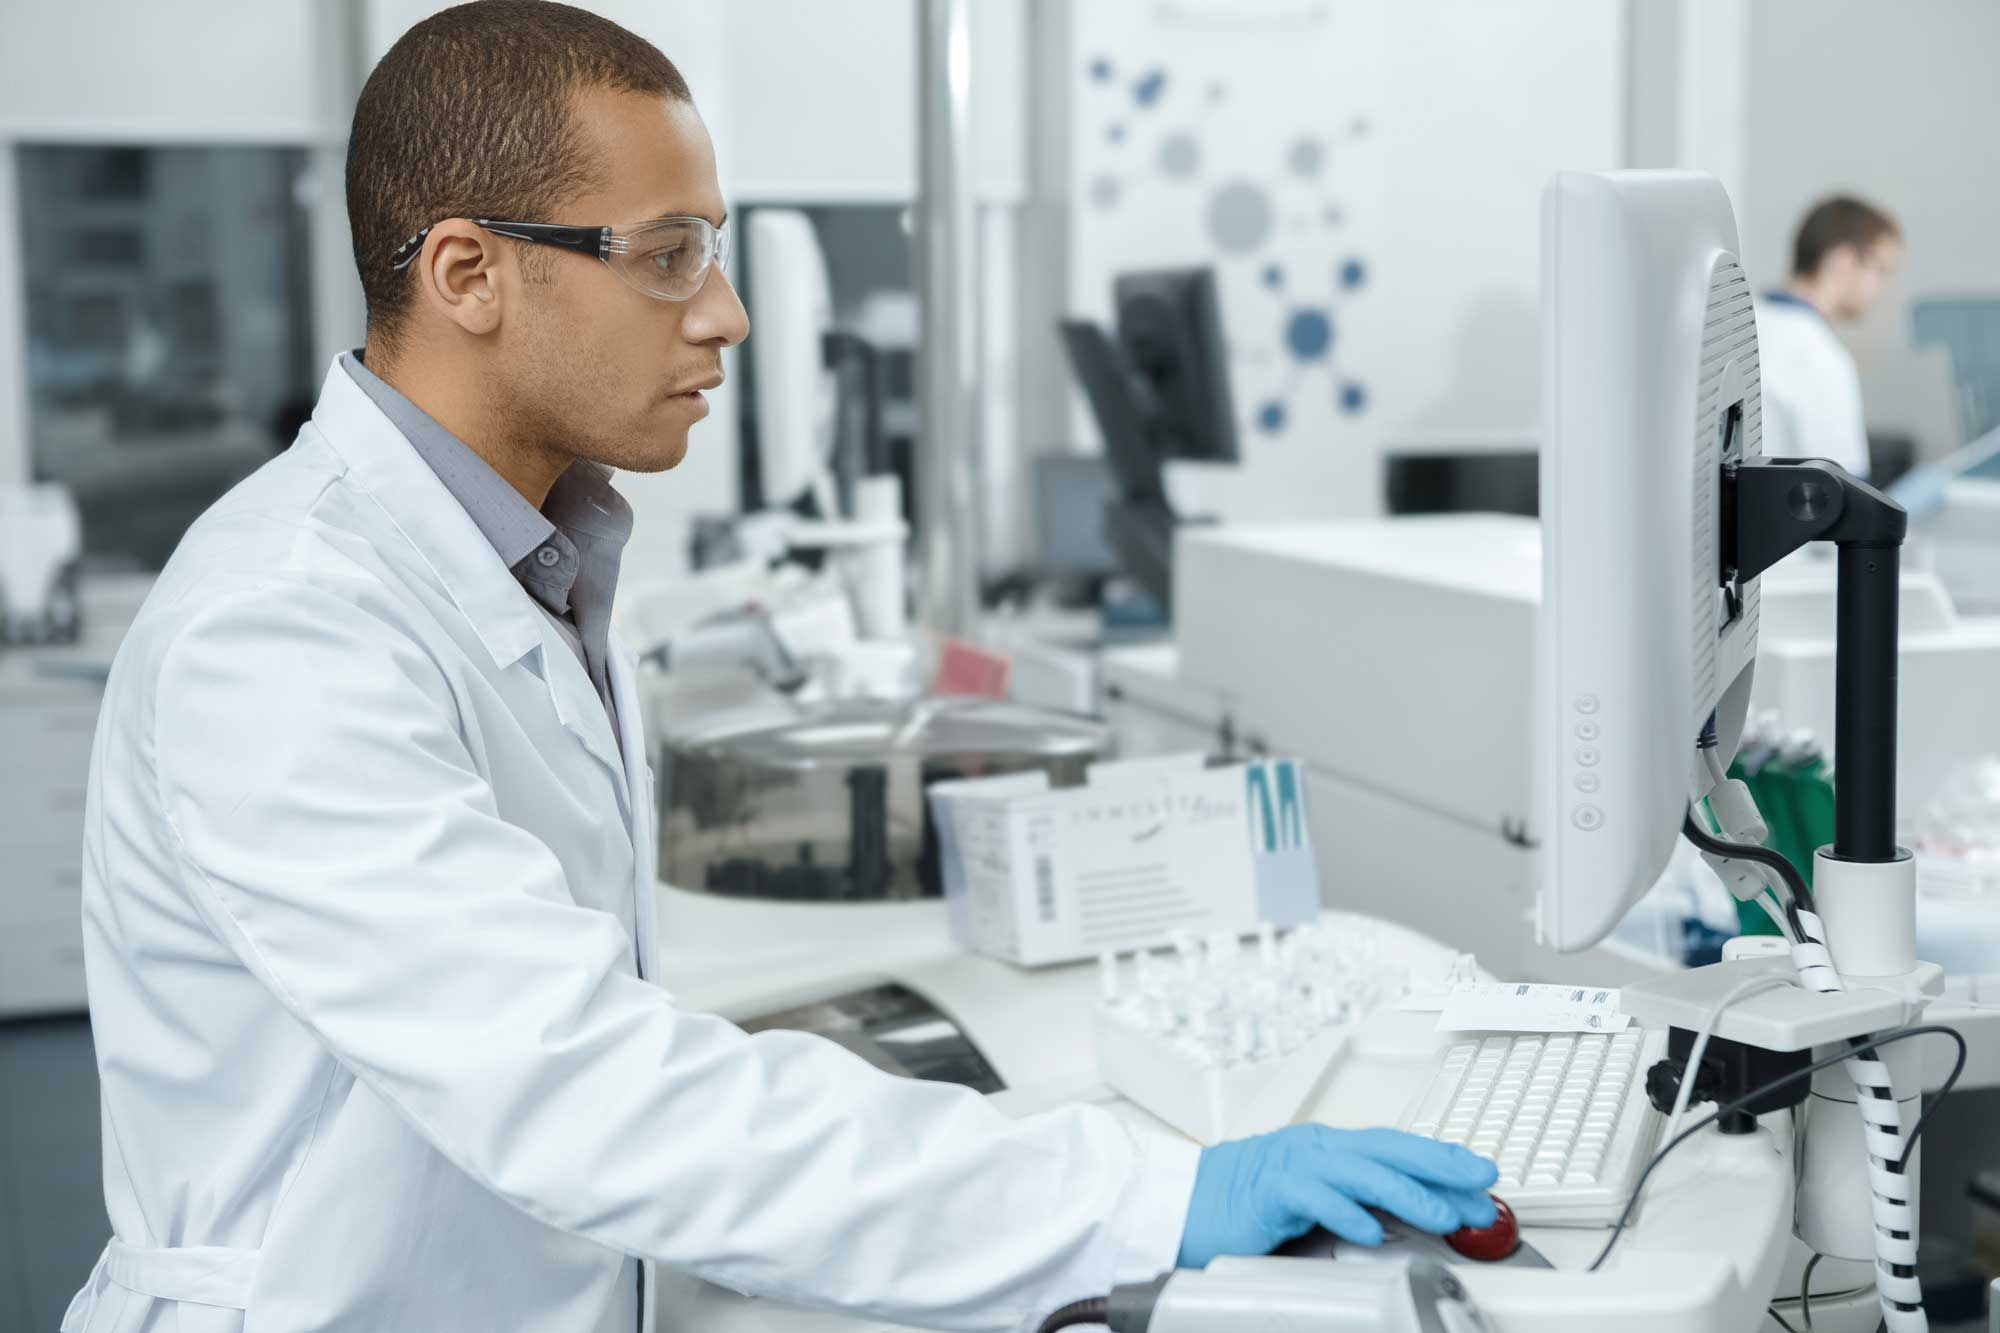 Register, connect and explore Biologics research and development data in LabKey Biologics